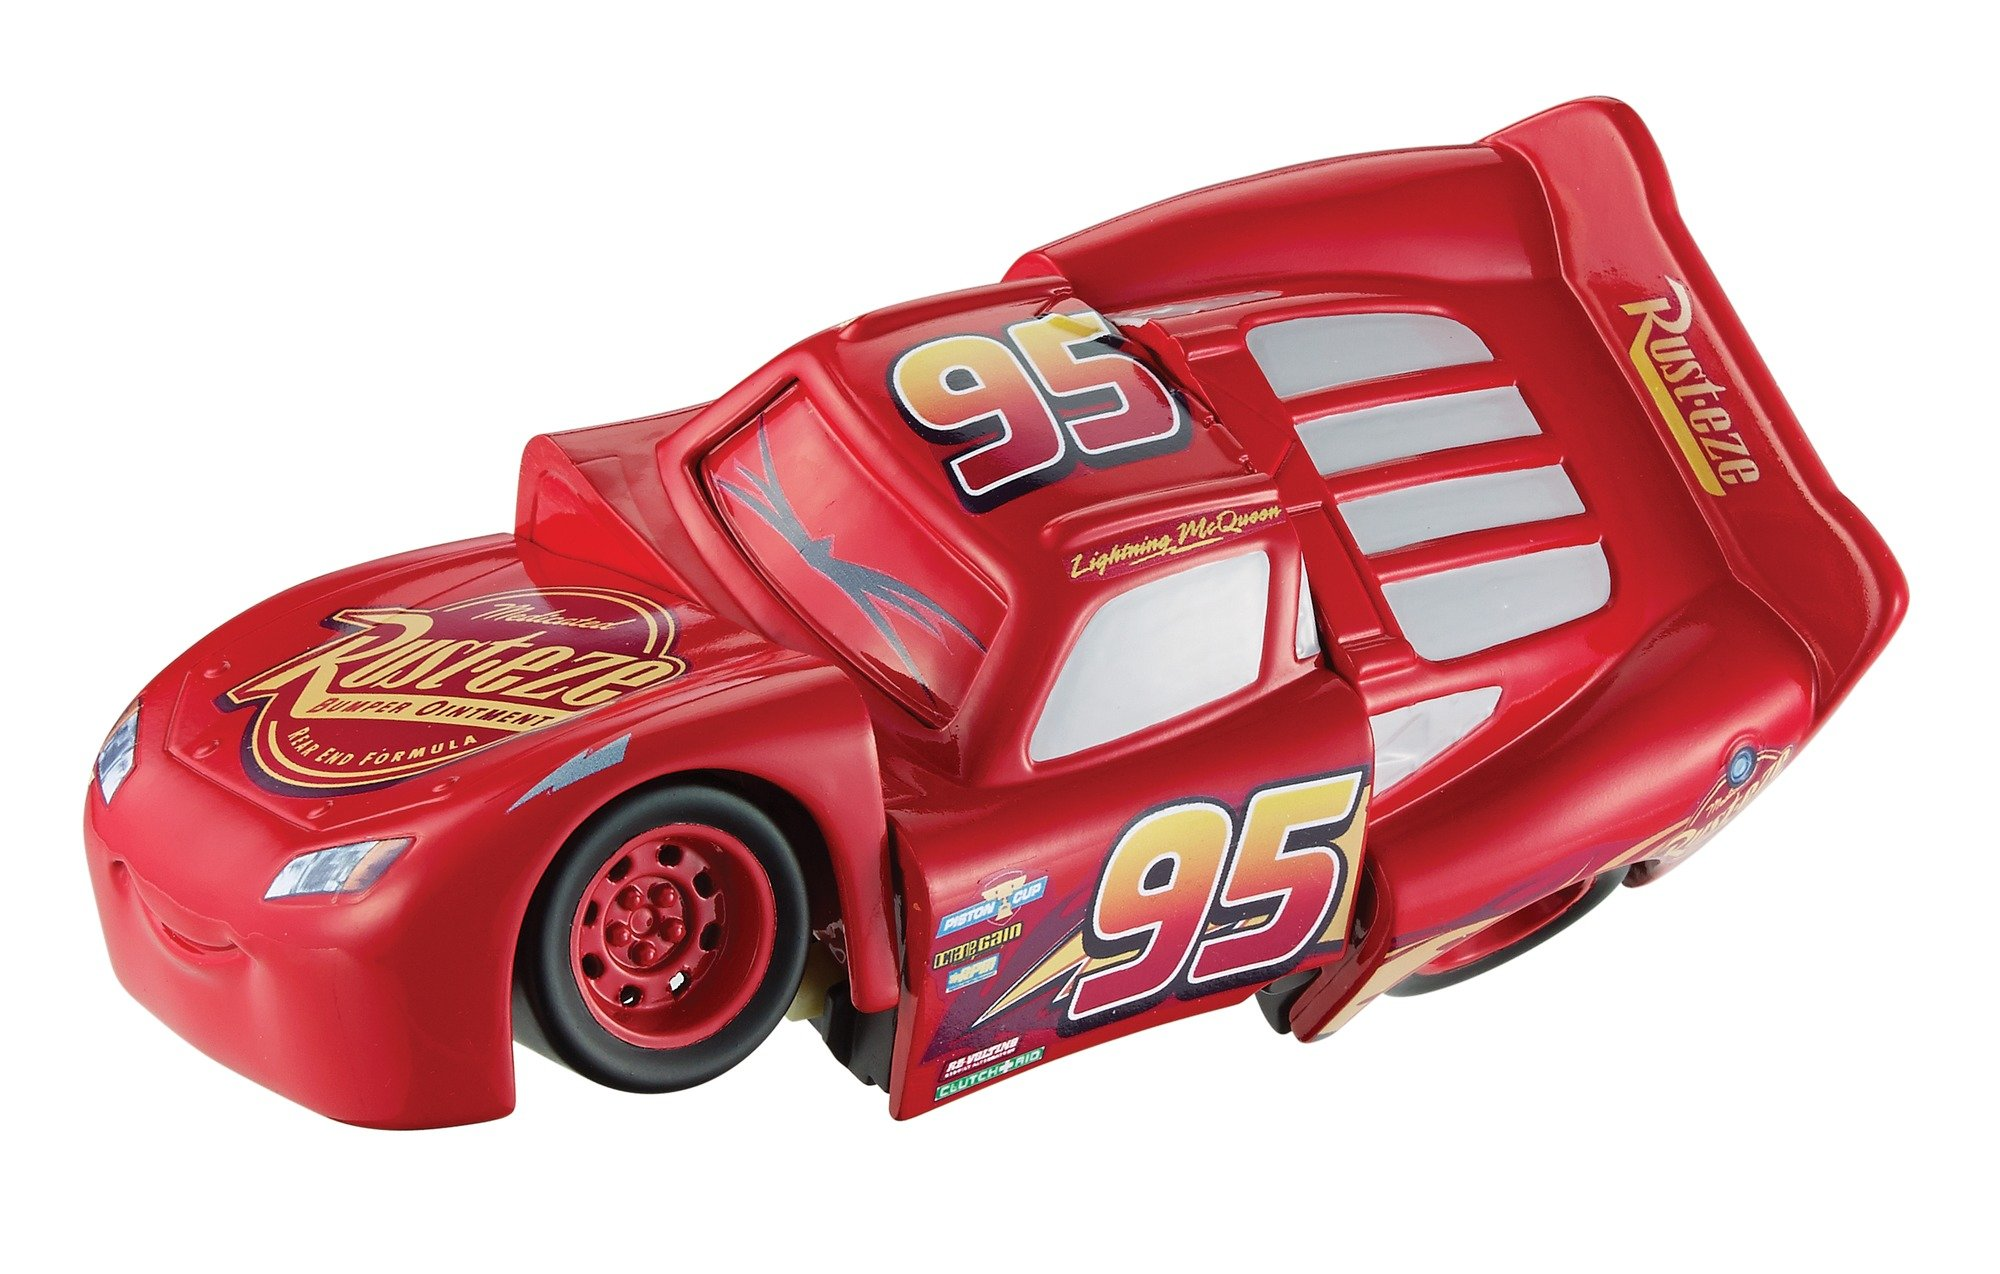 Disney DYW39 Pixar Cars 3 Race and Reck Lightning McQueen Vehicle Disney New Disney Pixar Cars 3 Twisted Crashers vehicle.  His body twists and his eyes change after the crash!  Restore him to his former; pre smash glory by simply twisting the car back into place! 11